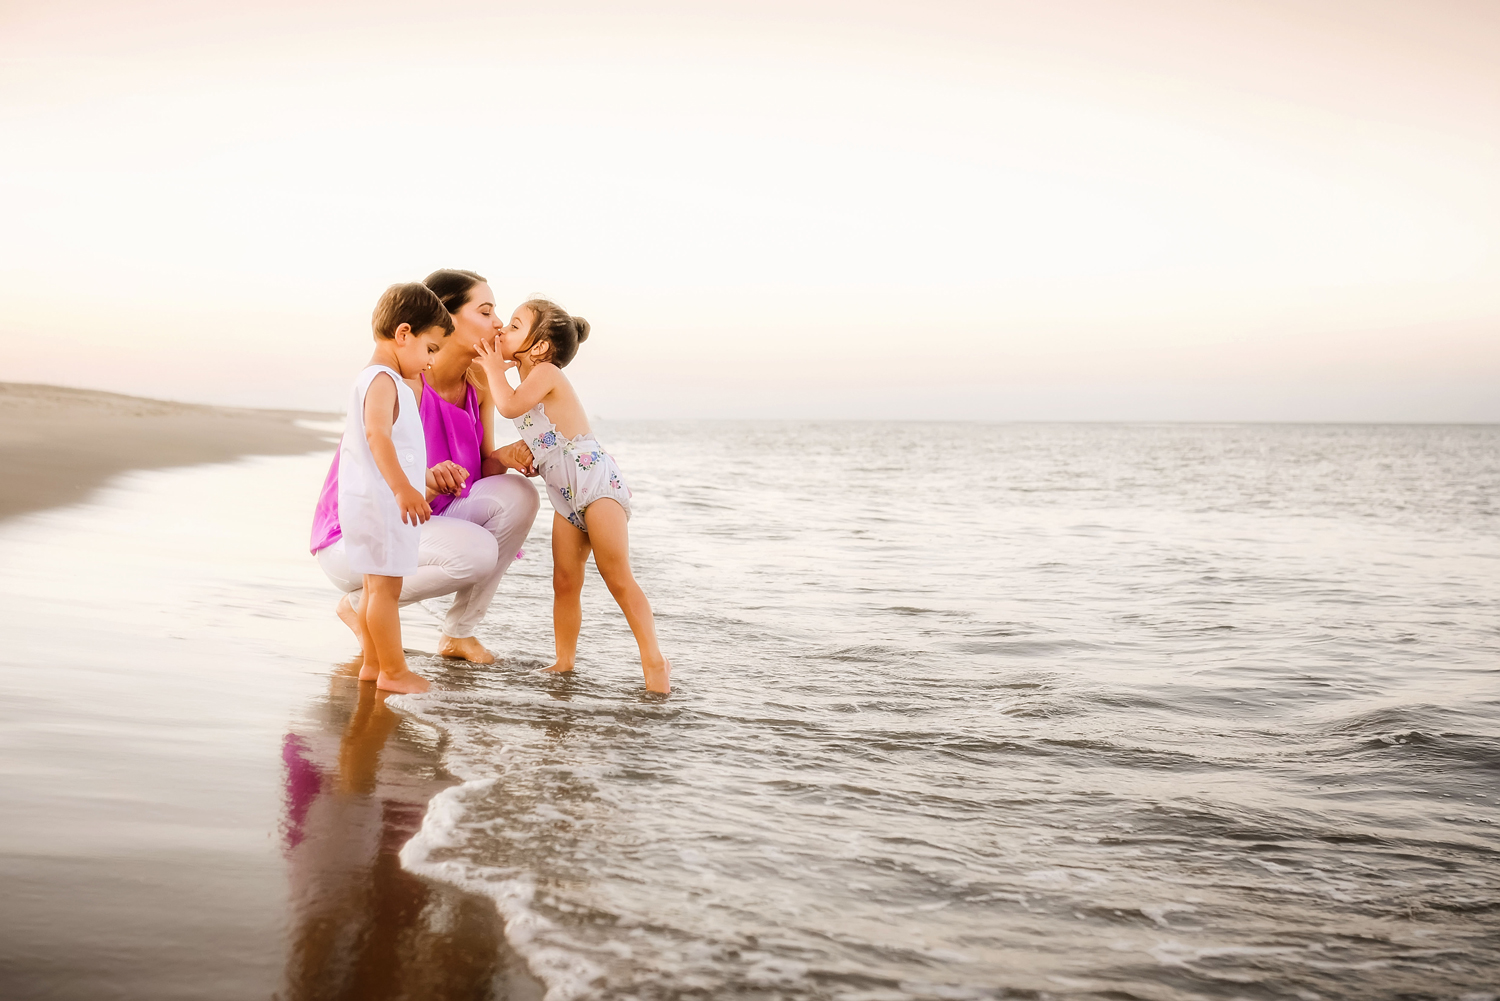 mommy-and-me-beach-photoshoot-va-beach-melissa-bliss-photography-hampton-roads-family-photographer.jpg